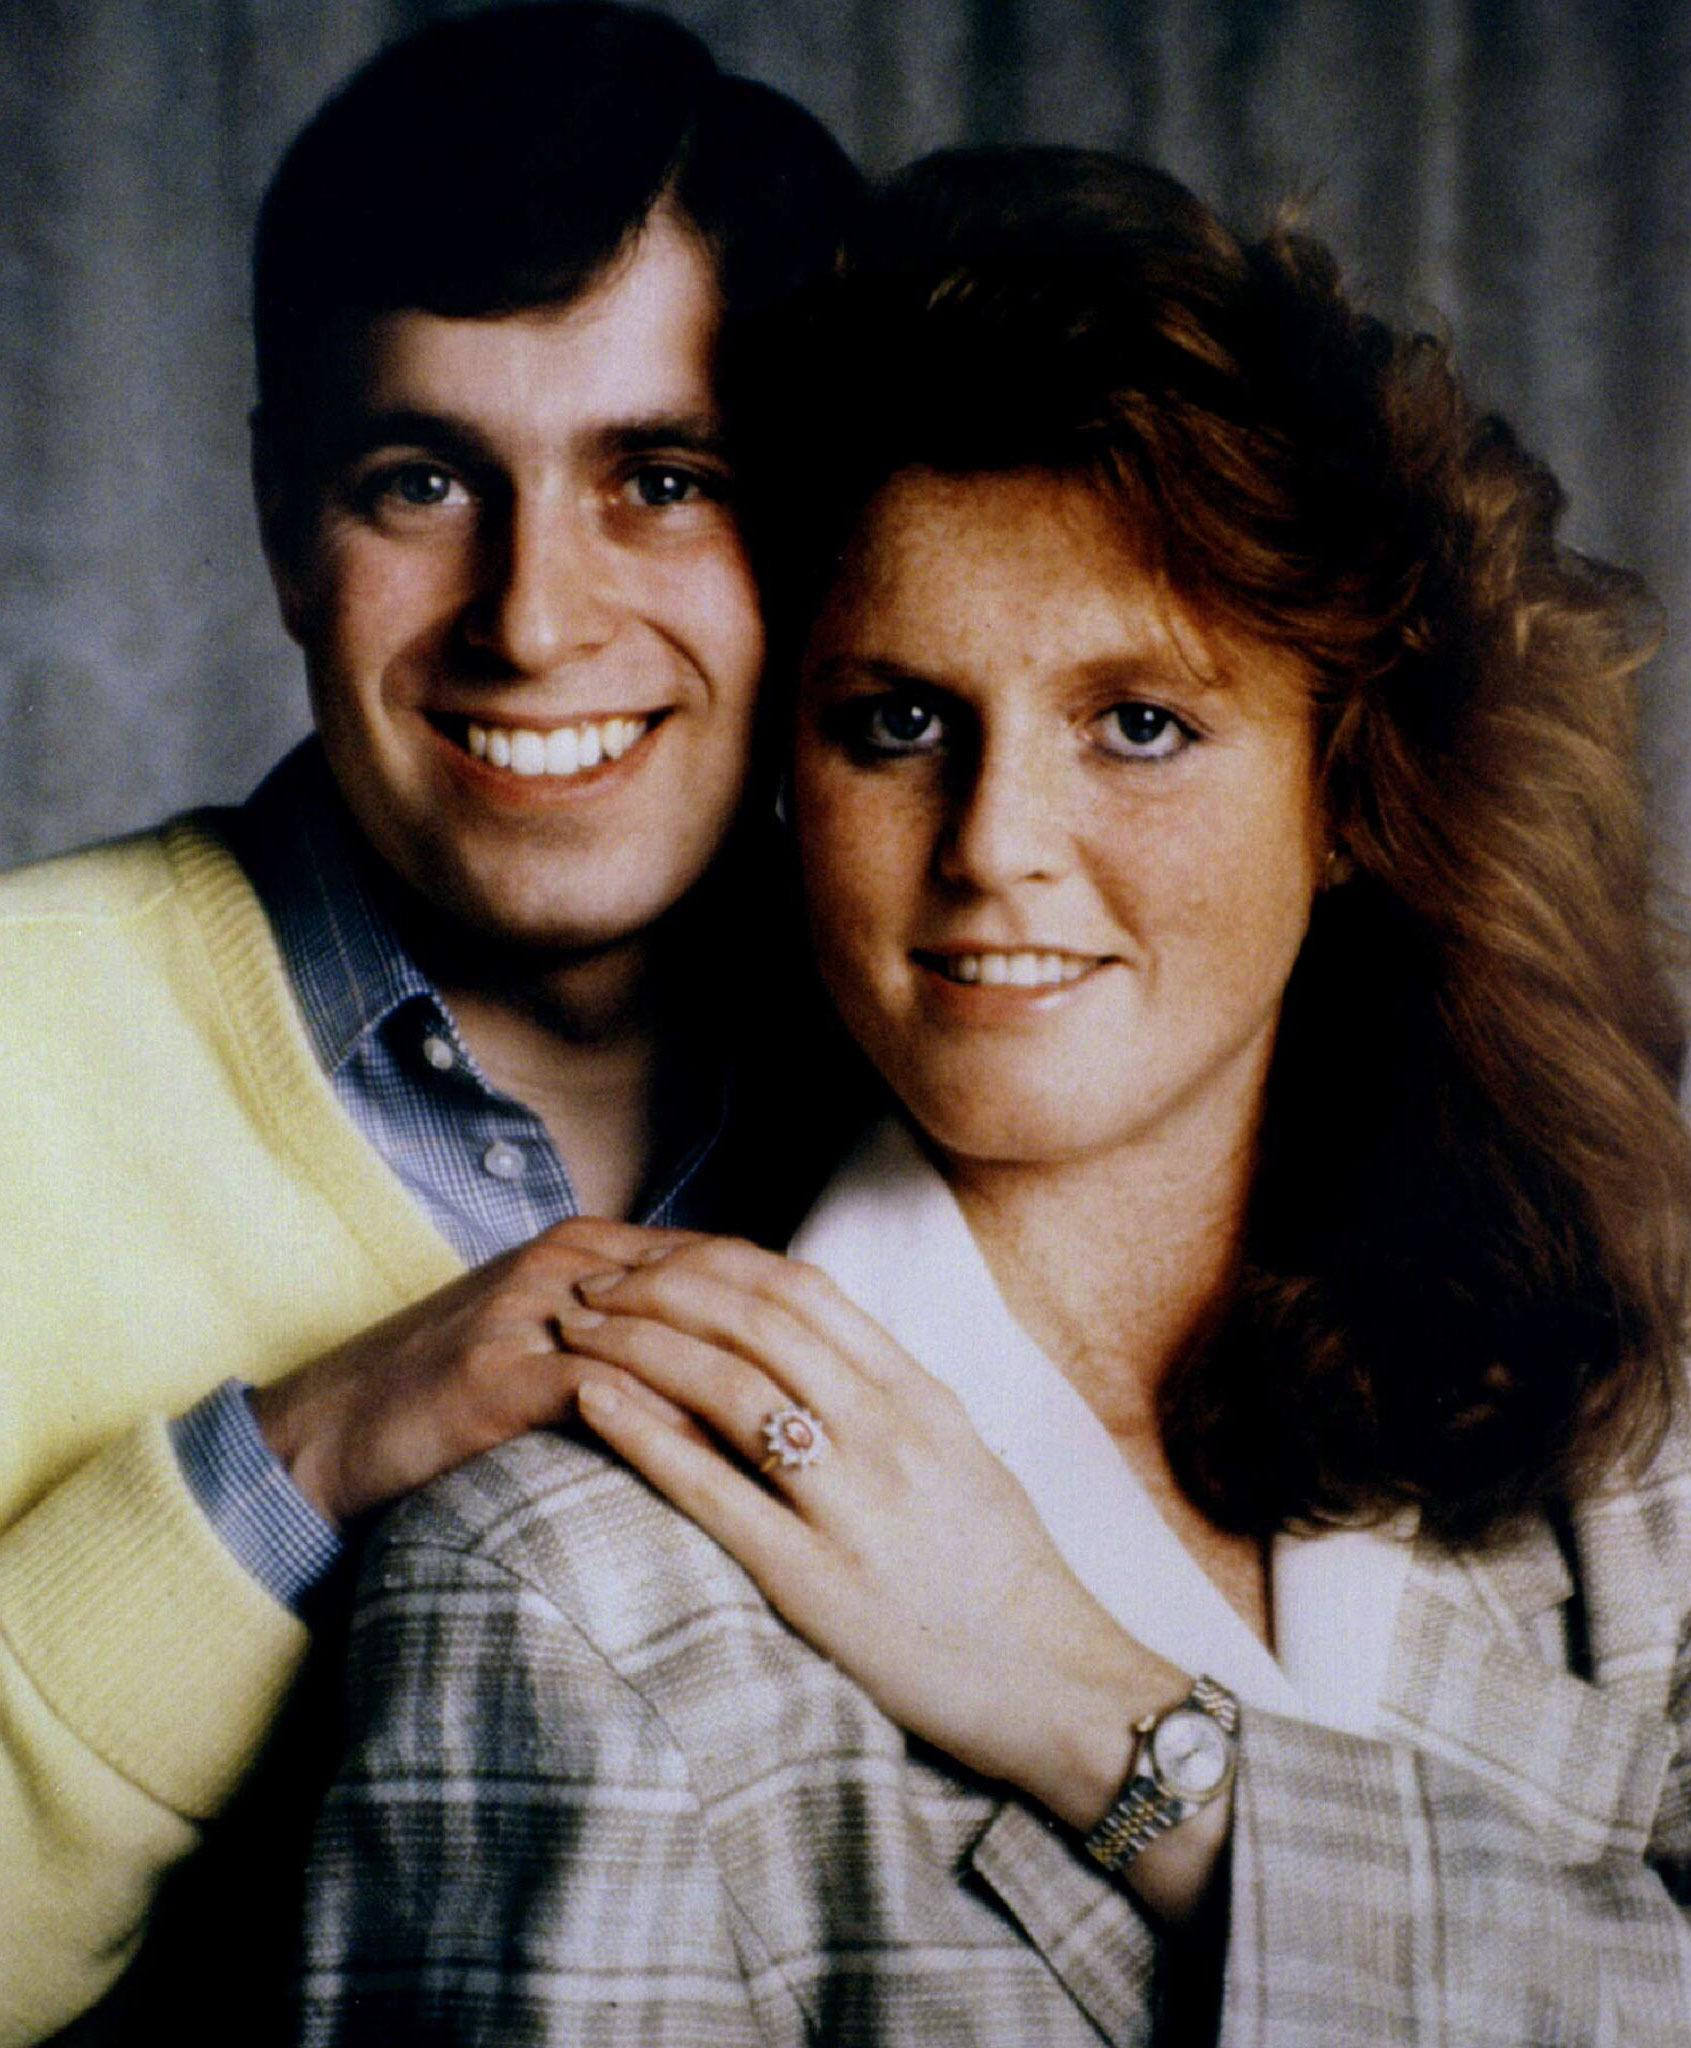 - FILE PHOTO JUNE 1986 - The solicitors of Britain's Duke and Duchess of York, pictured before their 1986 wedding, announced April 16 the couple are to divorce. [The marriage between Queen Elizabeth II's second son Andrew and Sarah Ferguson is likely to be over by May said the statement from the solicitors of both.]